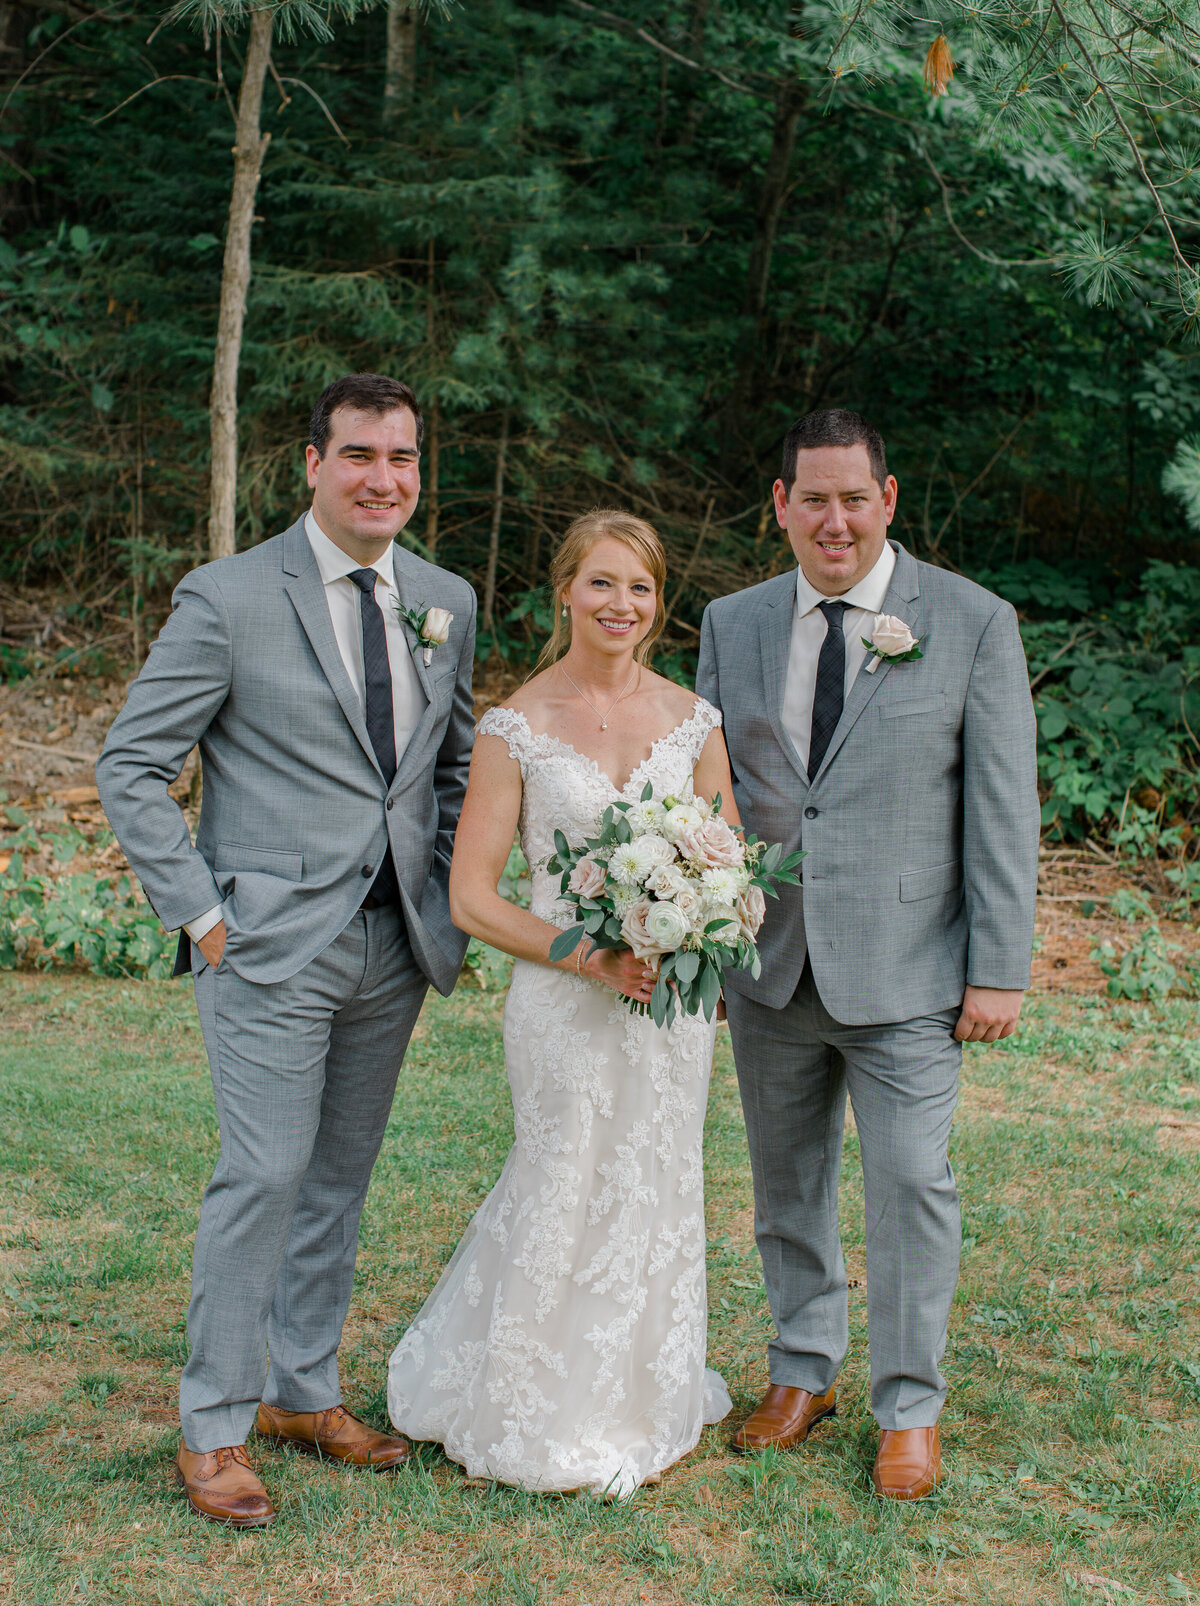 veronica-colin-wedding-woodlawn-grey-loft-studio-2020-82